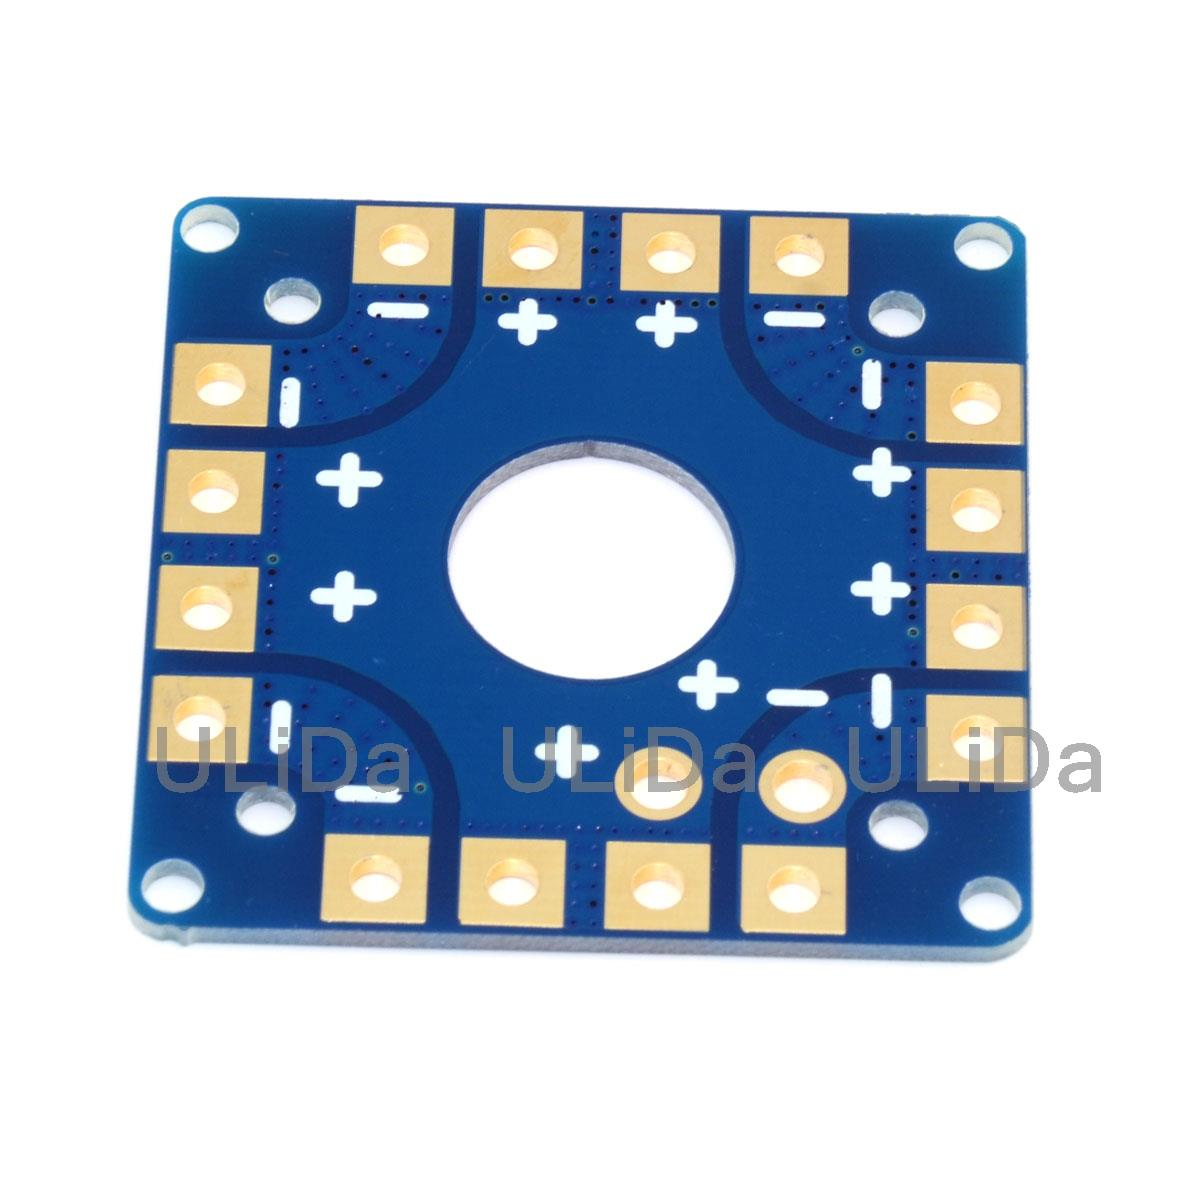 ESC Power Distribution Board for APM/CC3D/MWC multiwii/KK MultiCopter Quadcopter t plug power distribution board 4 axle switch panel for rc quadcopter apm px4